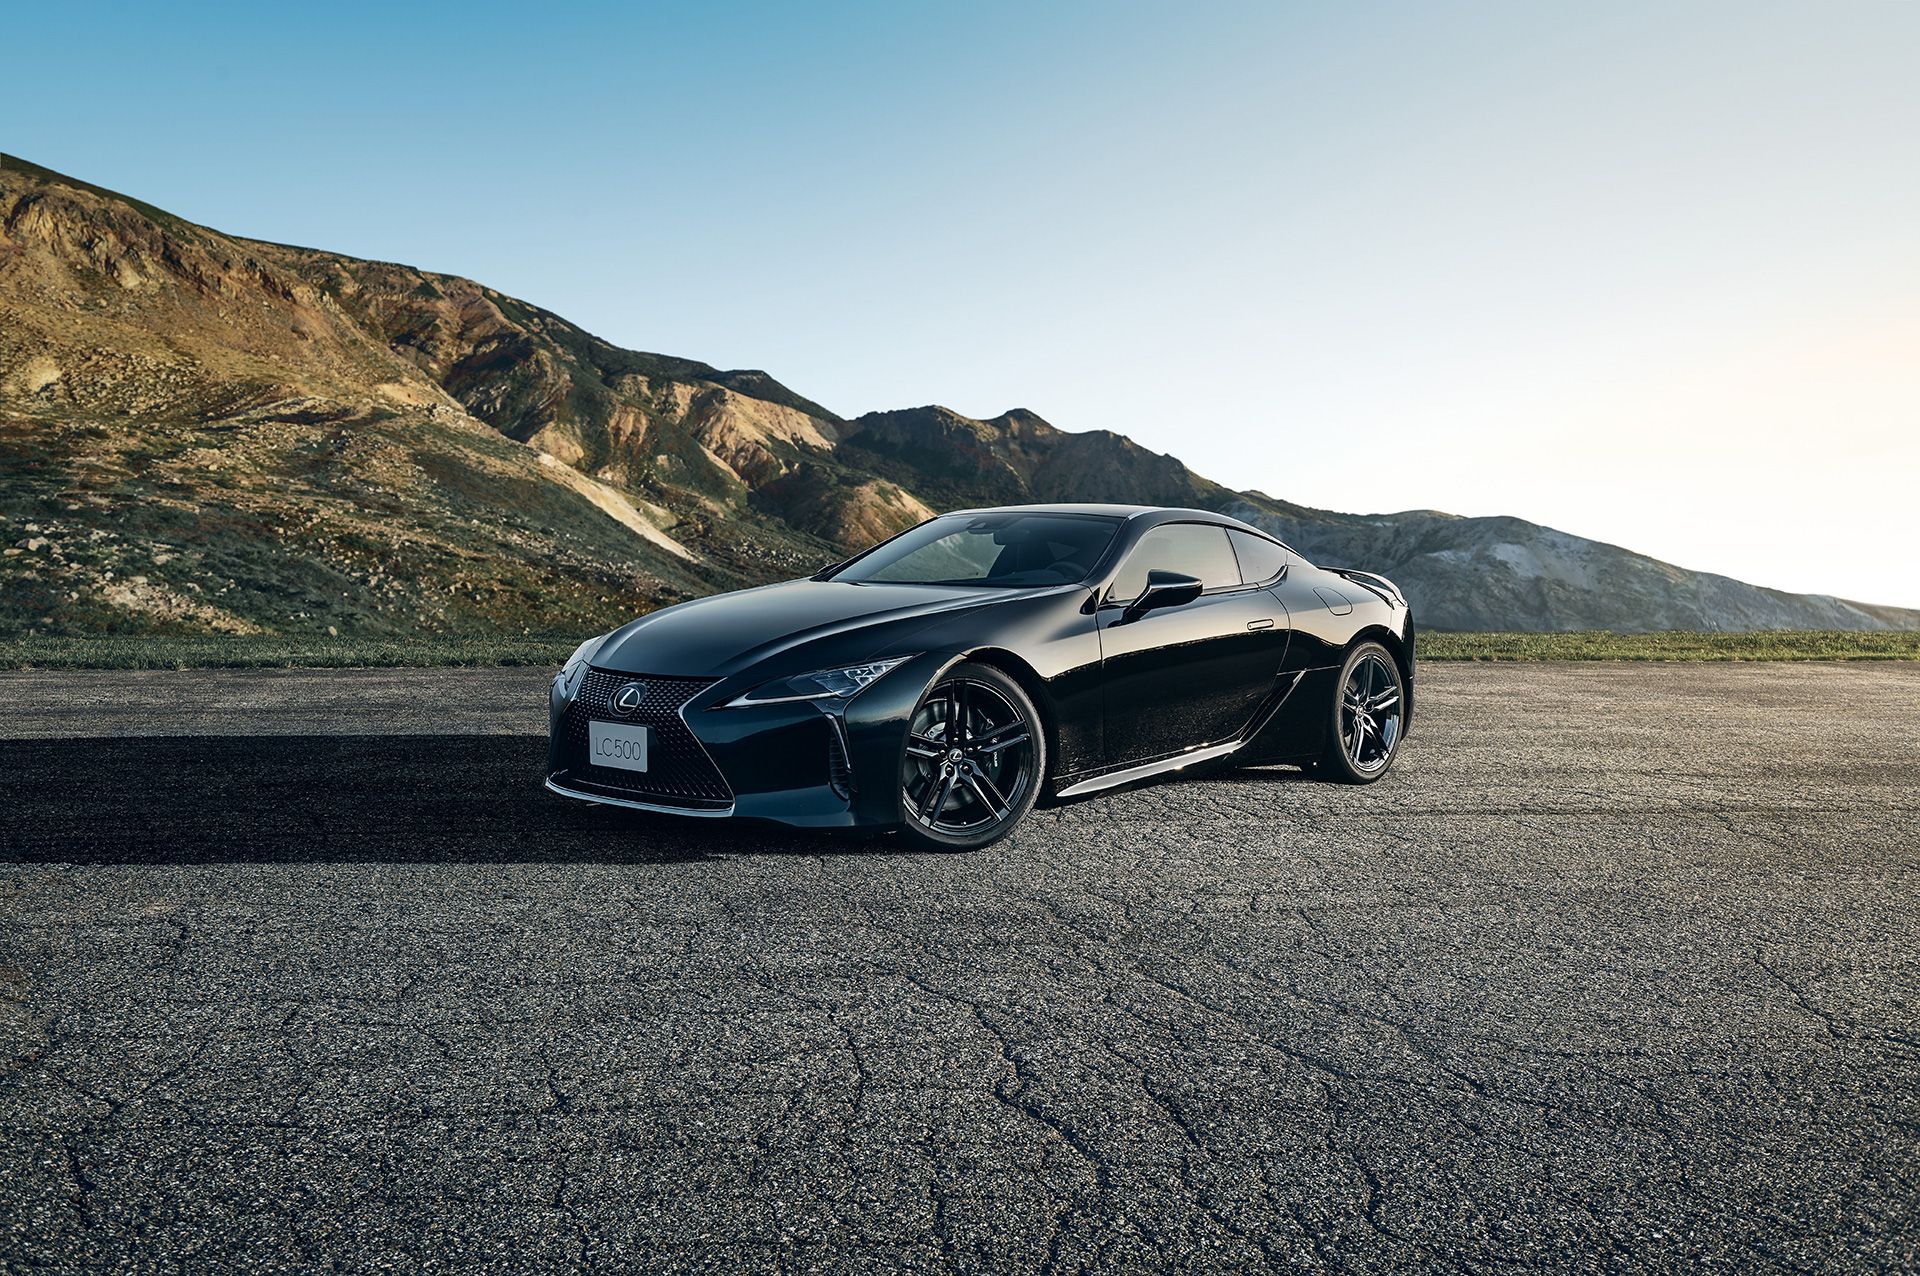 2021 Lexus LC 500 Inspiration Series front three quarter in mountains